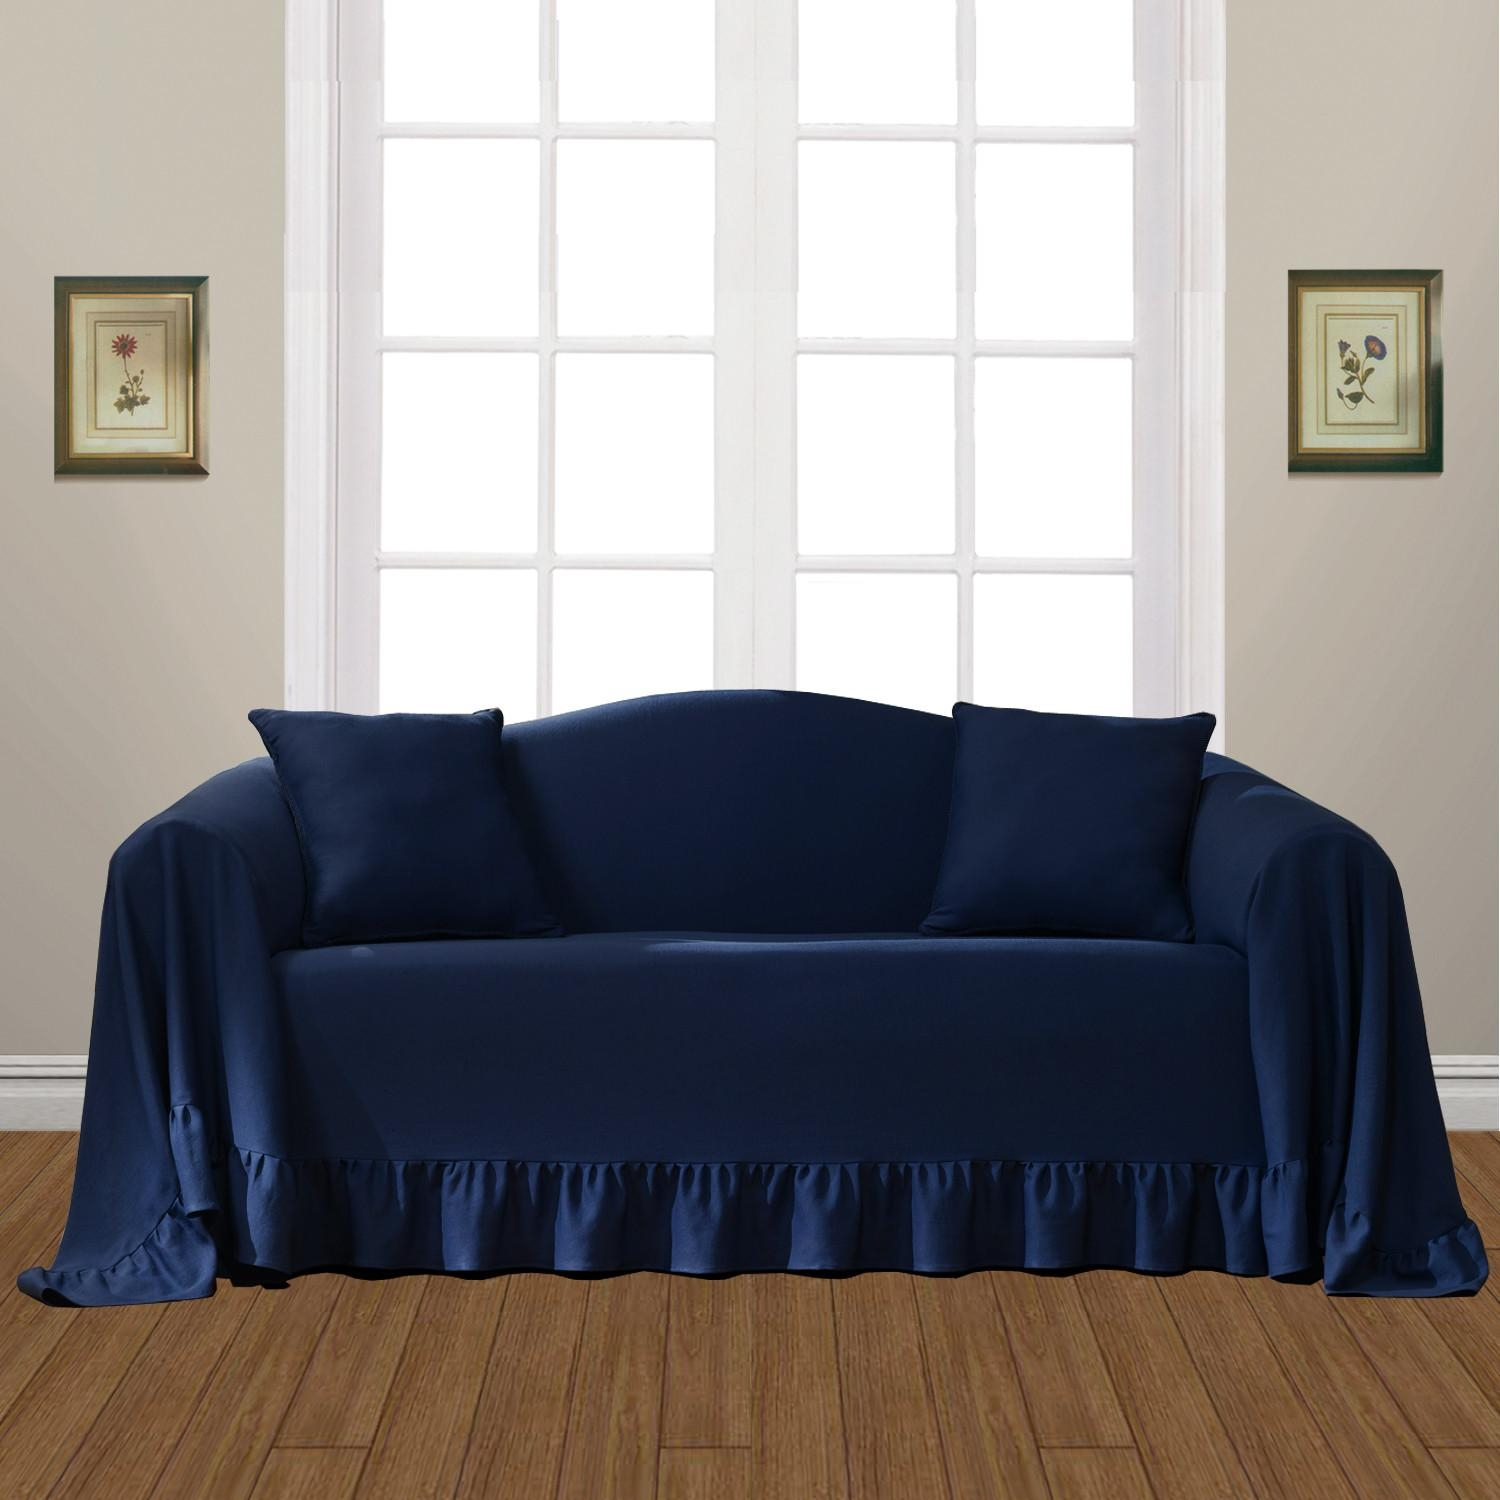 Featured Image of Blue Sofa Slipcovers